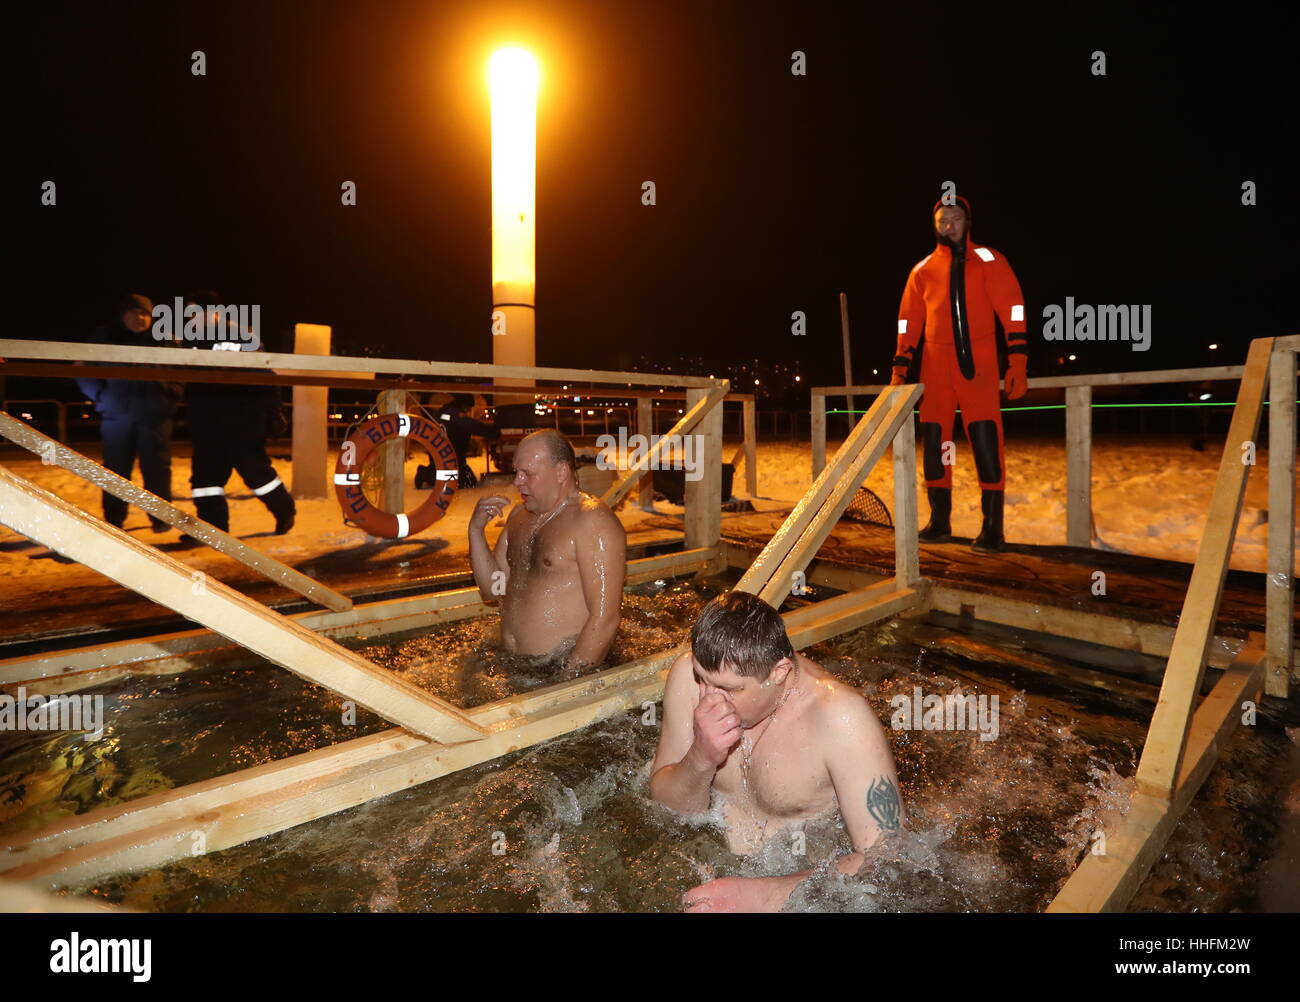 Moscow, Russia. 18th Jan, 2017. People dip in the icy waters of the Borisovo Ponds during Epiphany celebrations. - Stock Image